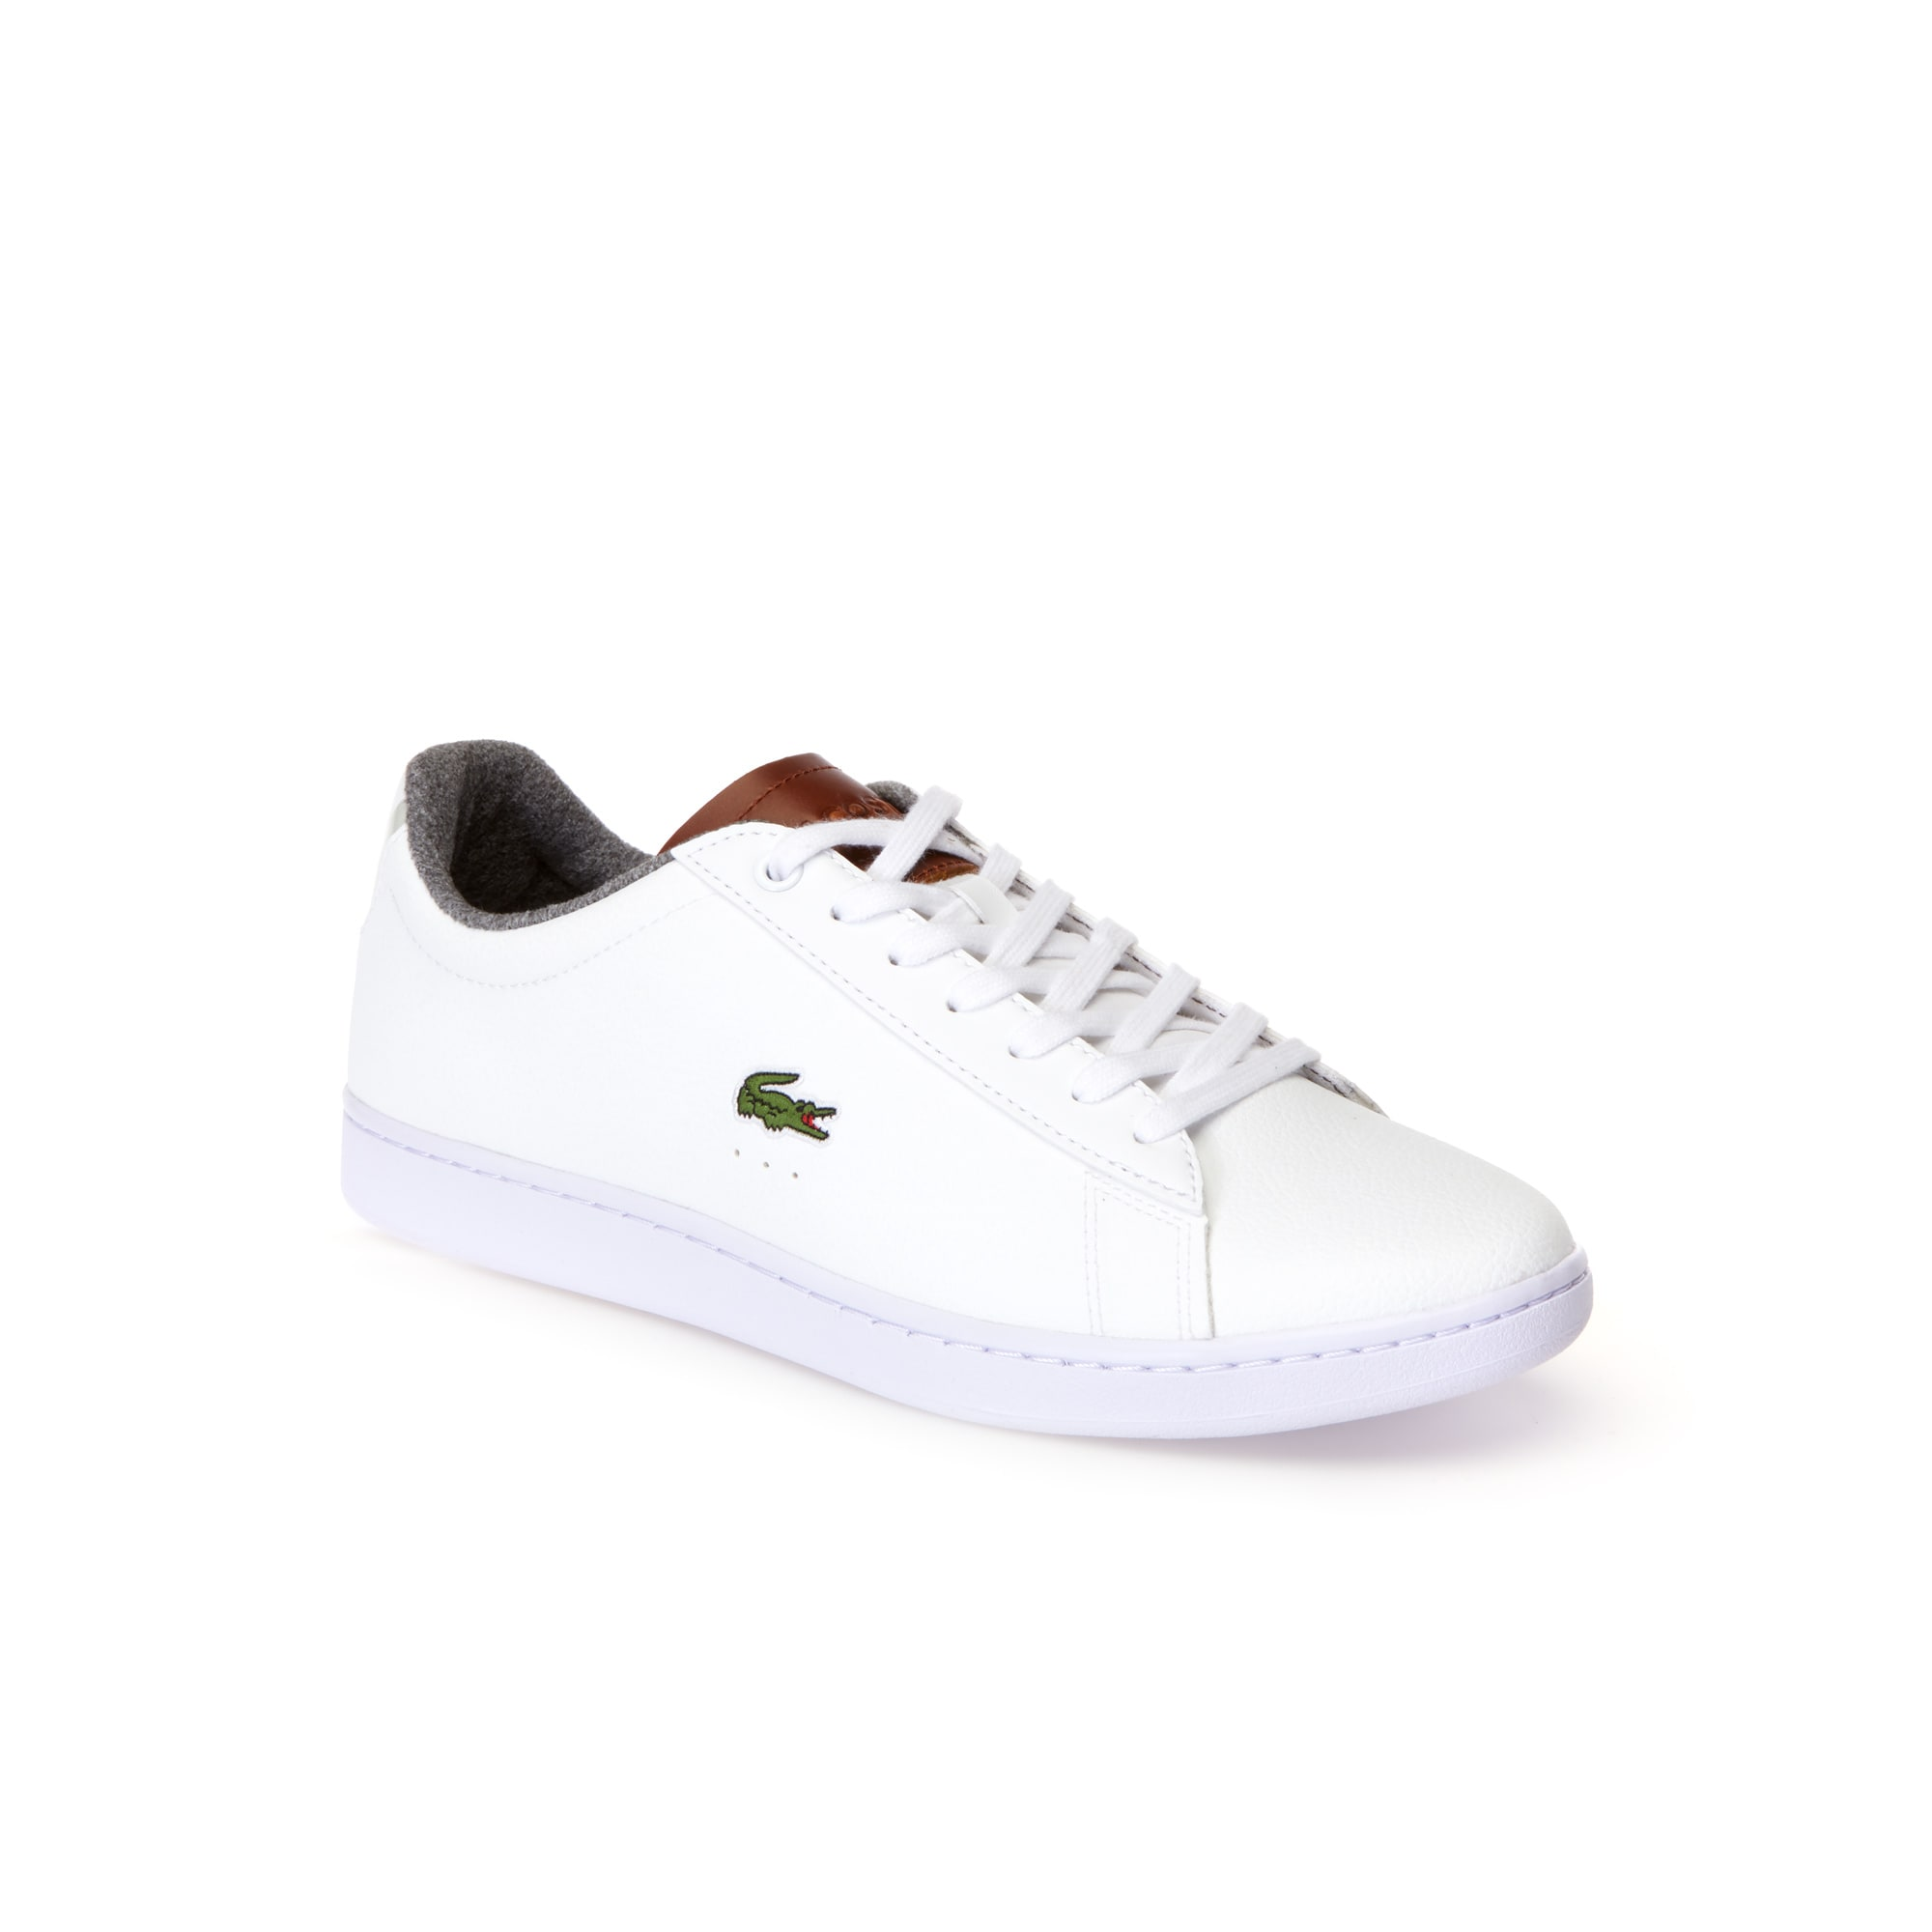 Men's Carnaby Evo Warm Leather Trainers